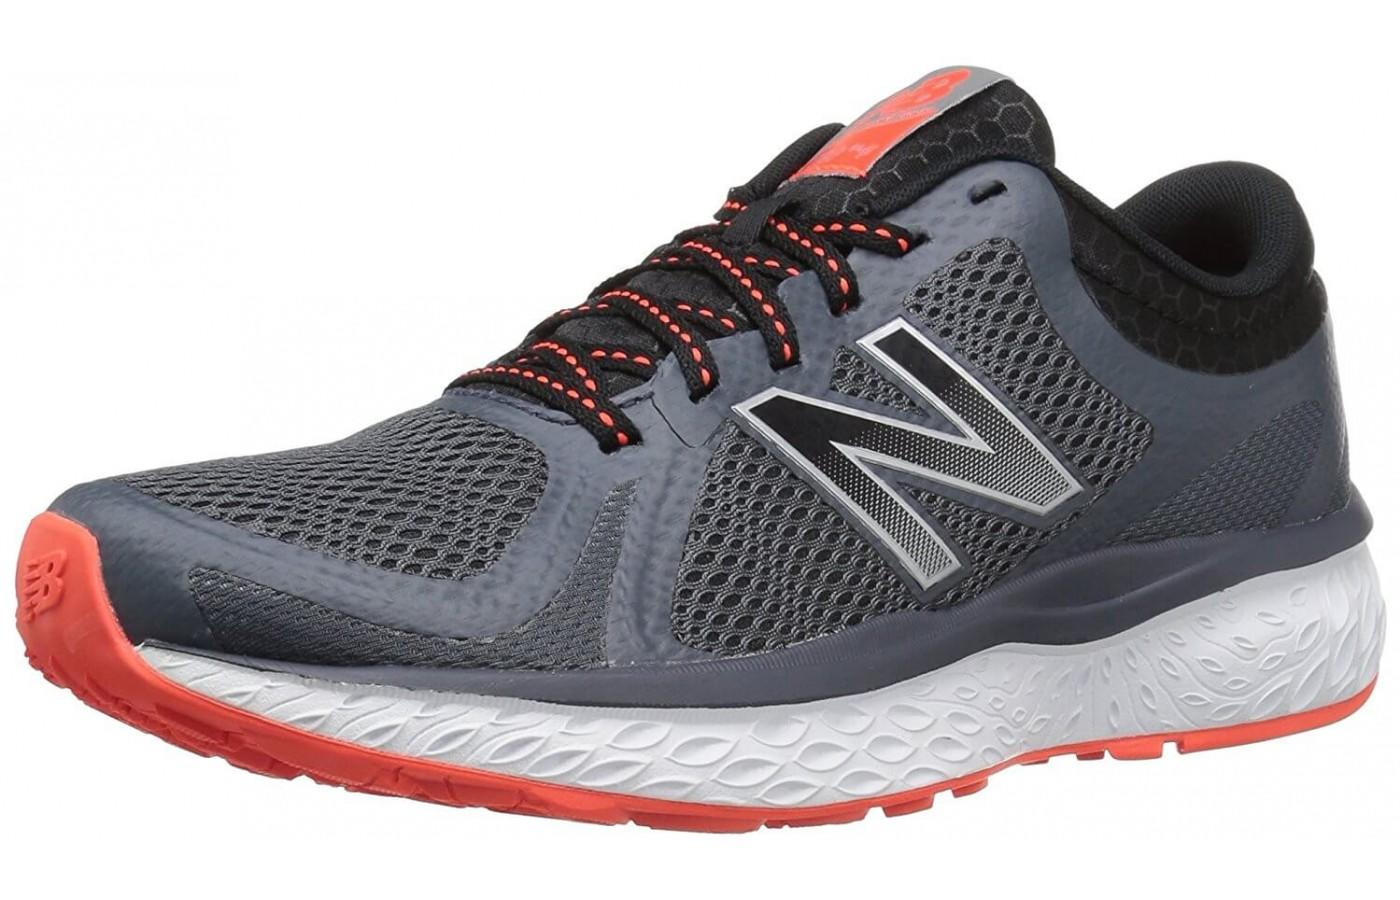 The New Balance 720 V4 features Cush+ cushioning